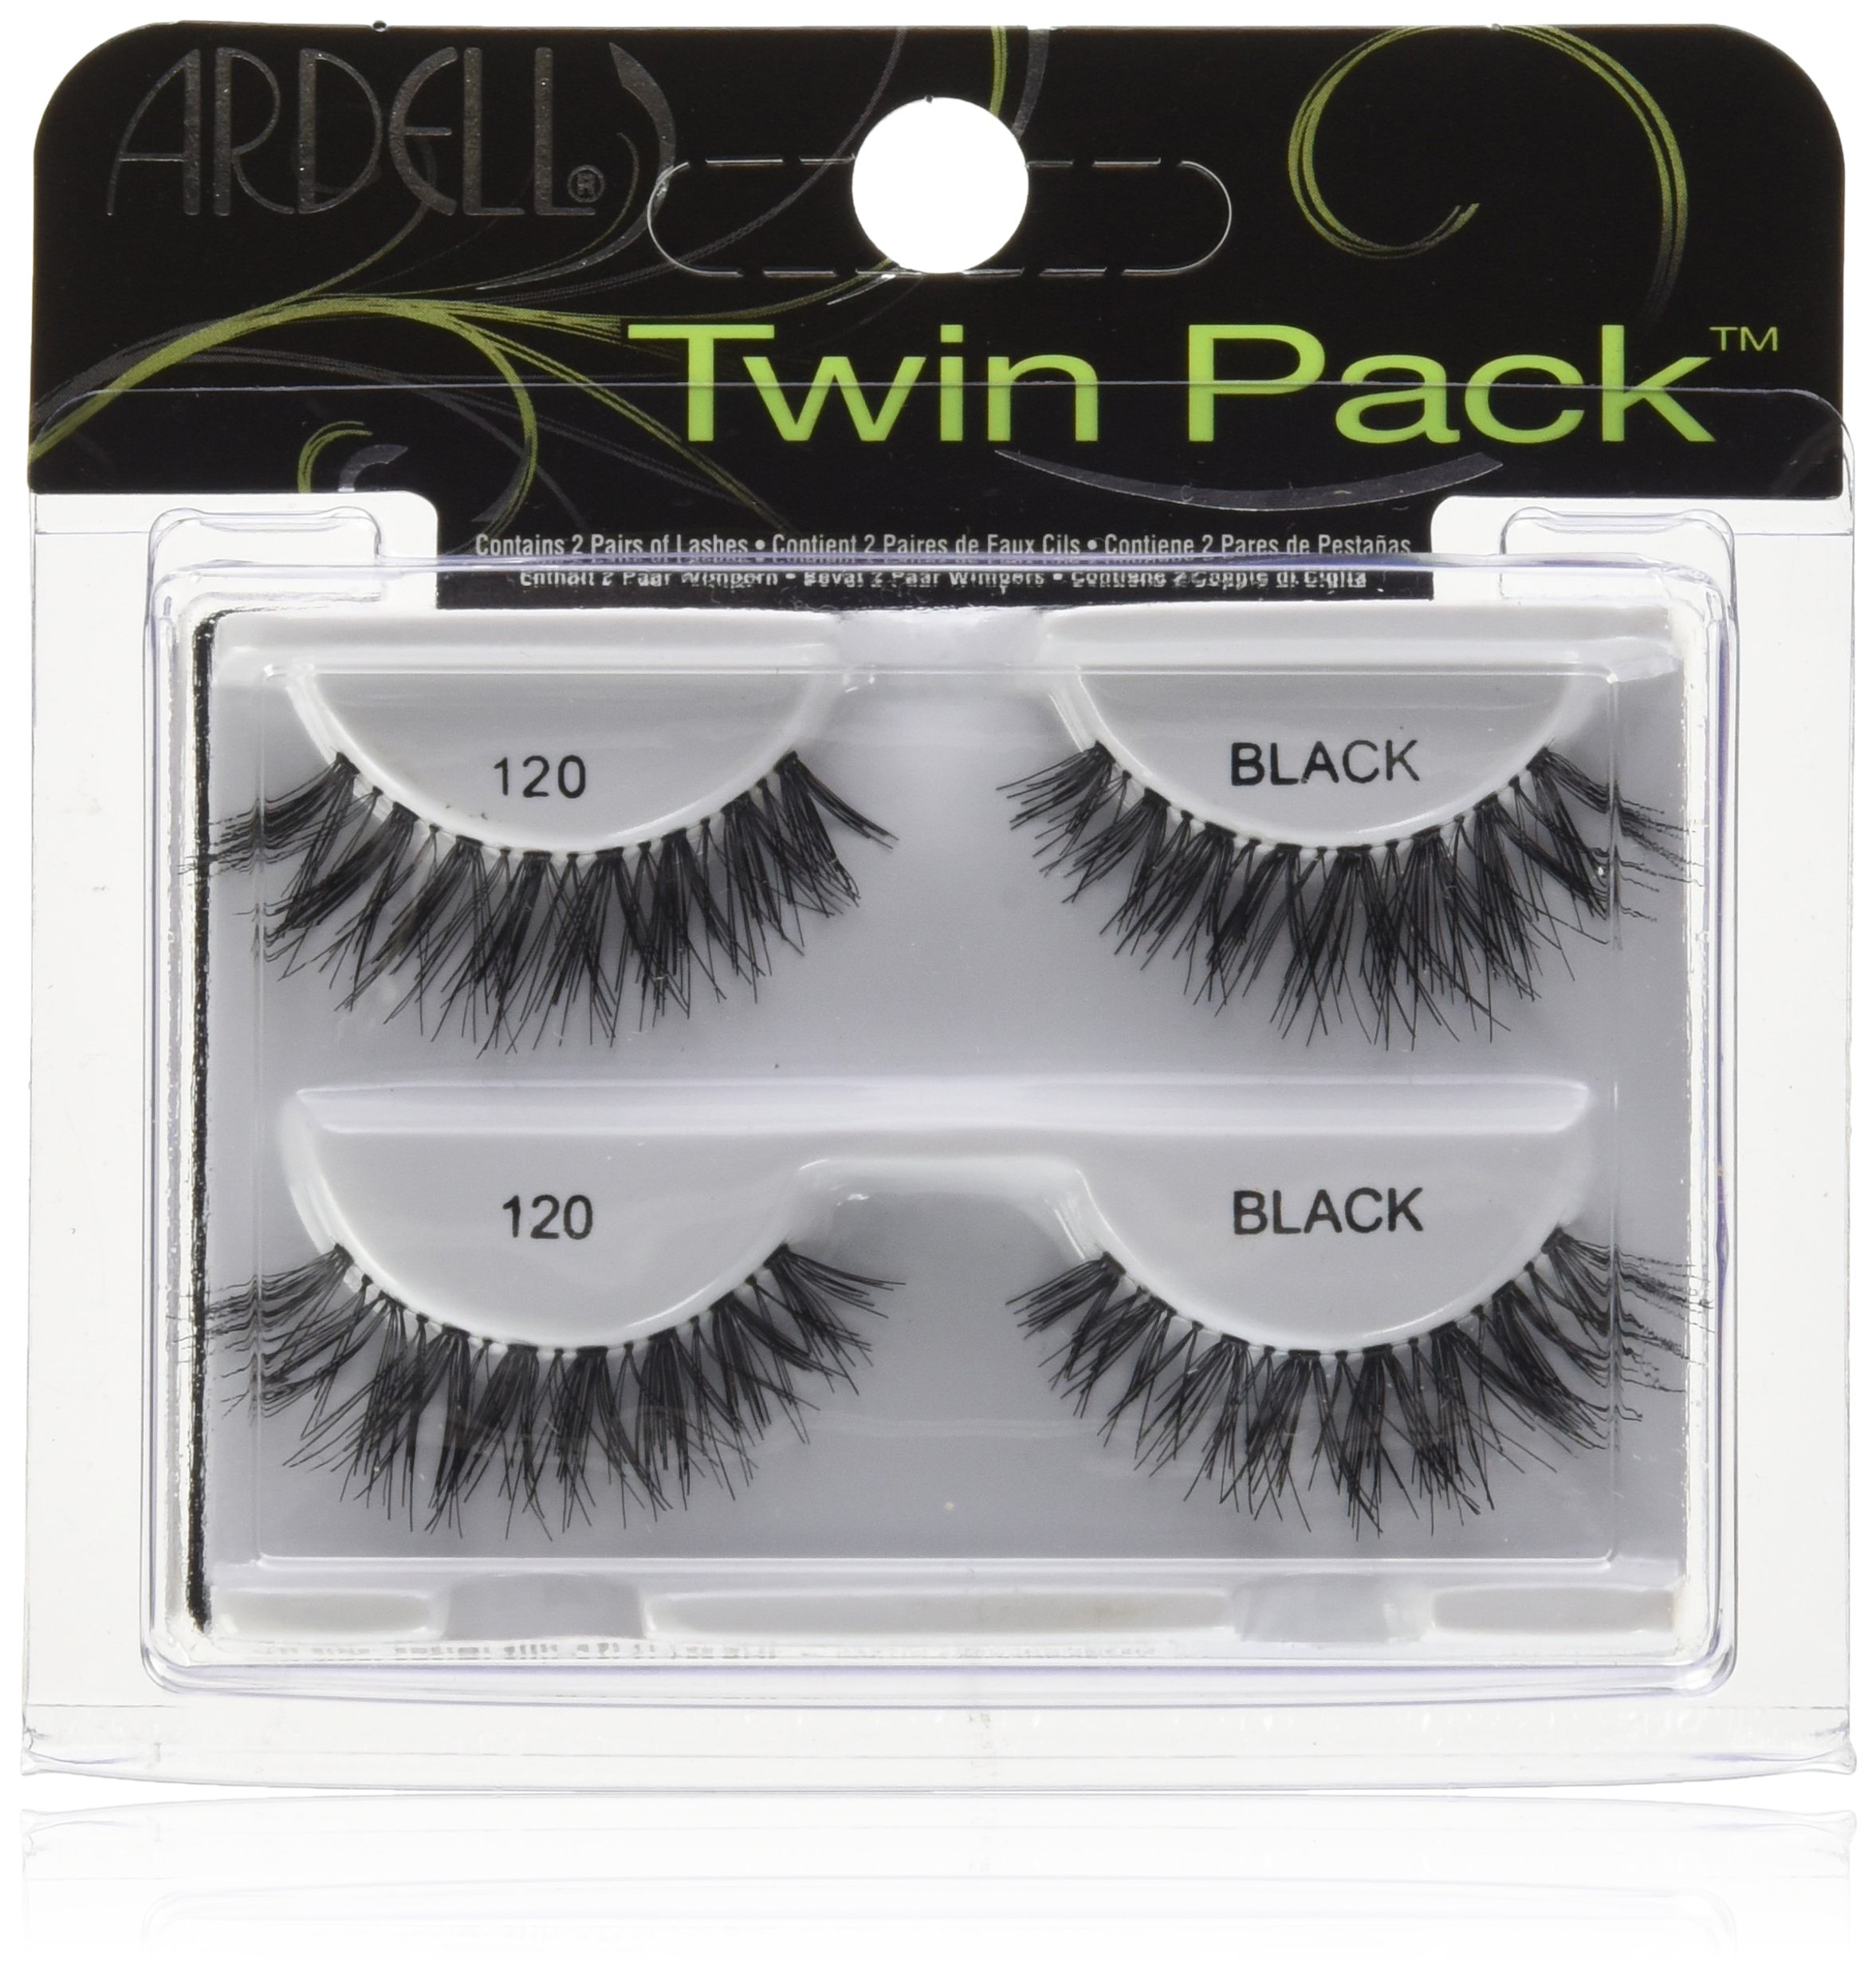 b009b1ae493 ARDELL Ardell Twin Pack #120 1 Count: Amazon.ca: Beauty